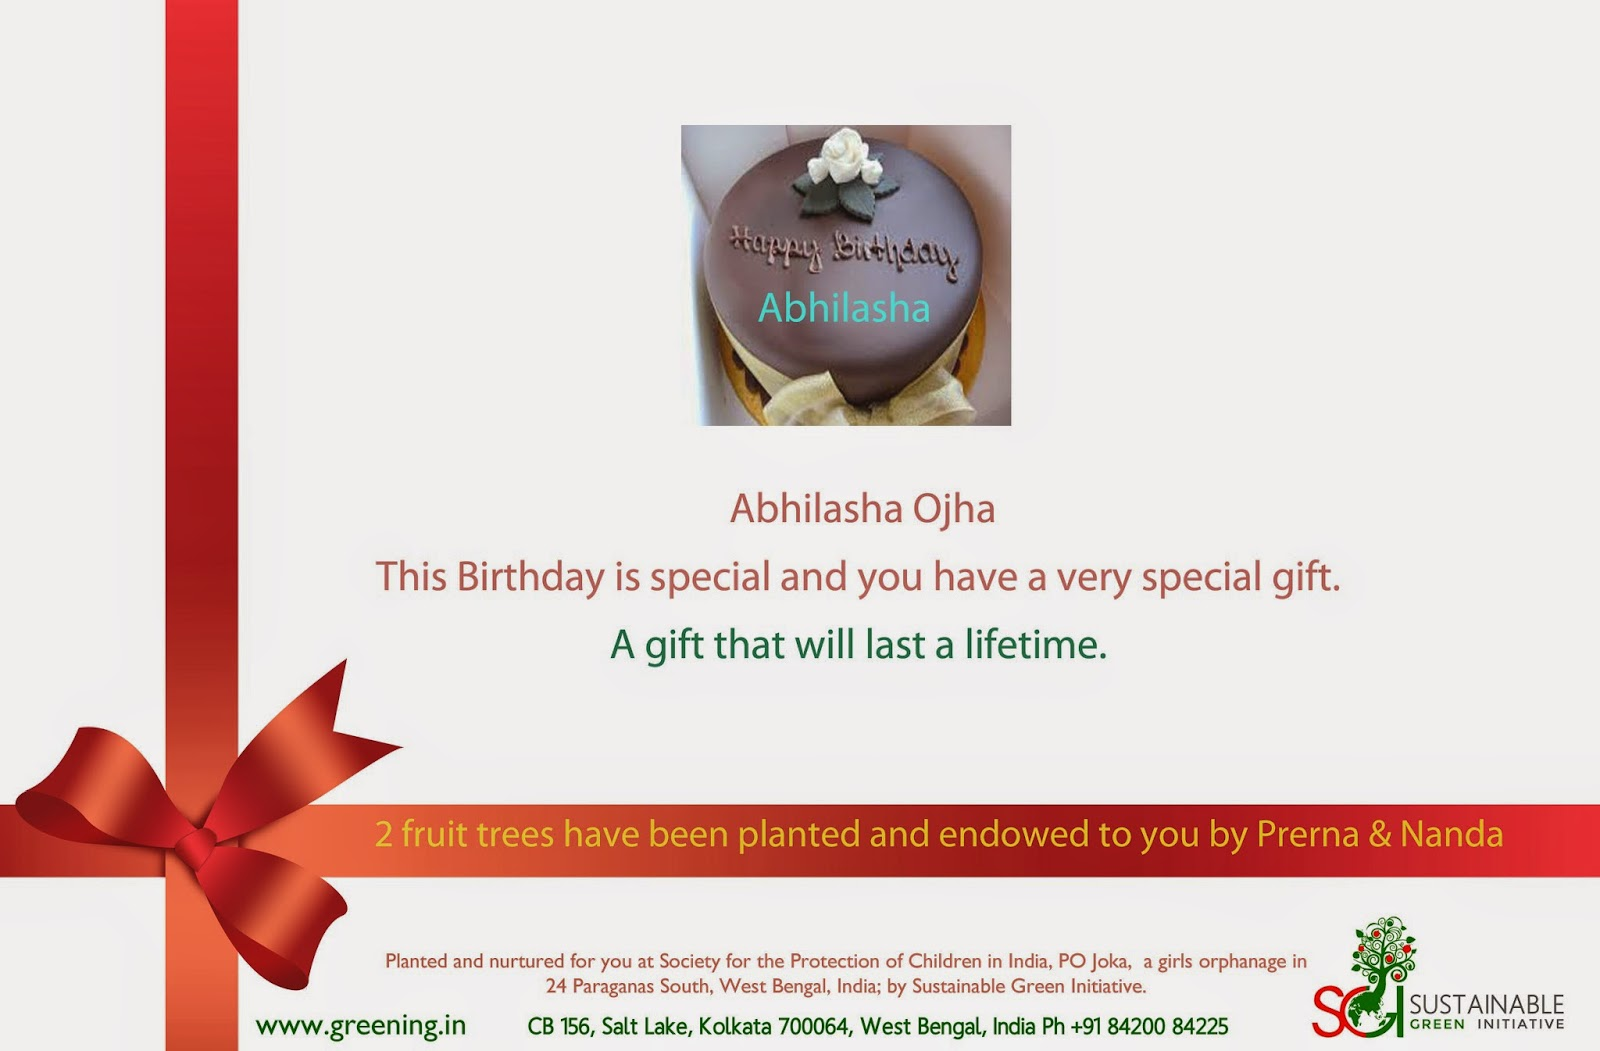 Special Birthday Gifts For Women Plant And Gift Trees They Last A Lifetime